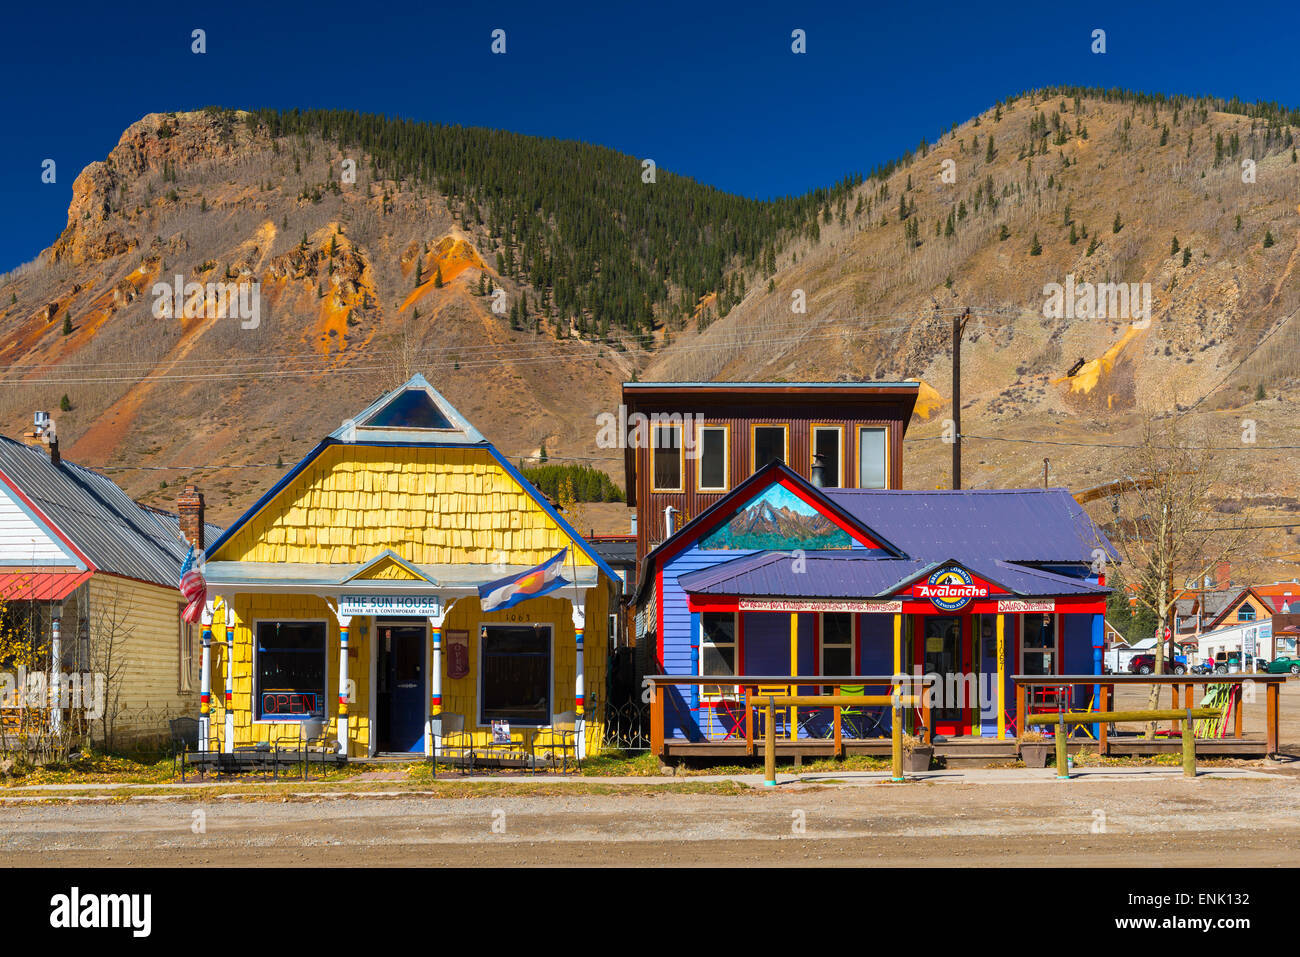 Silverton, Colorado, United States of America, North America - Stock Image